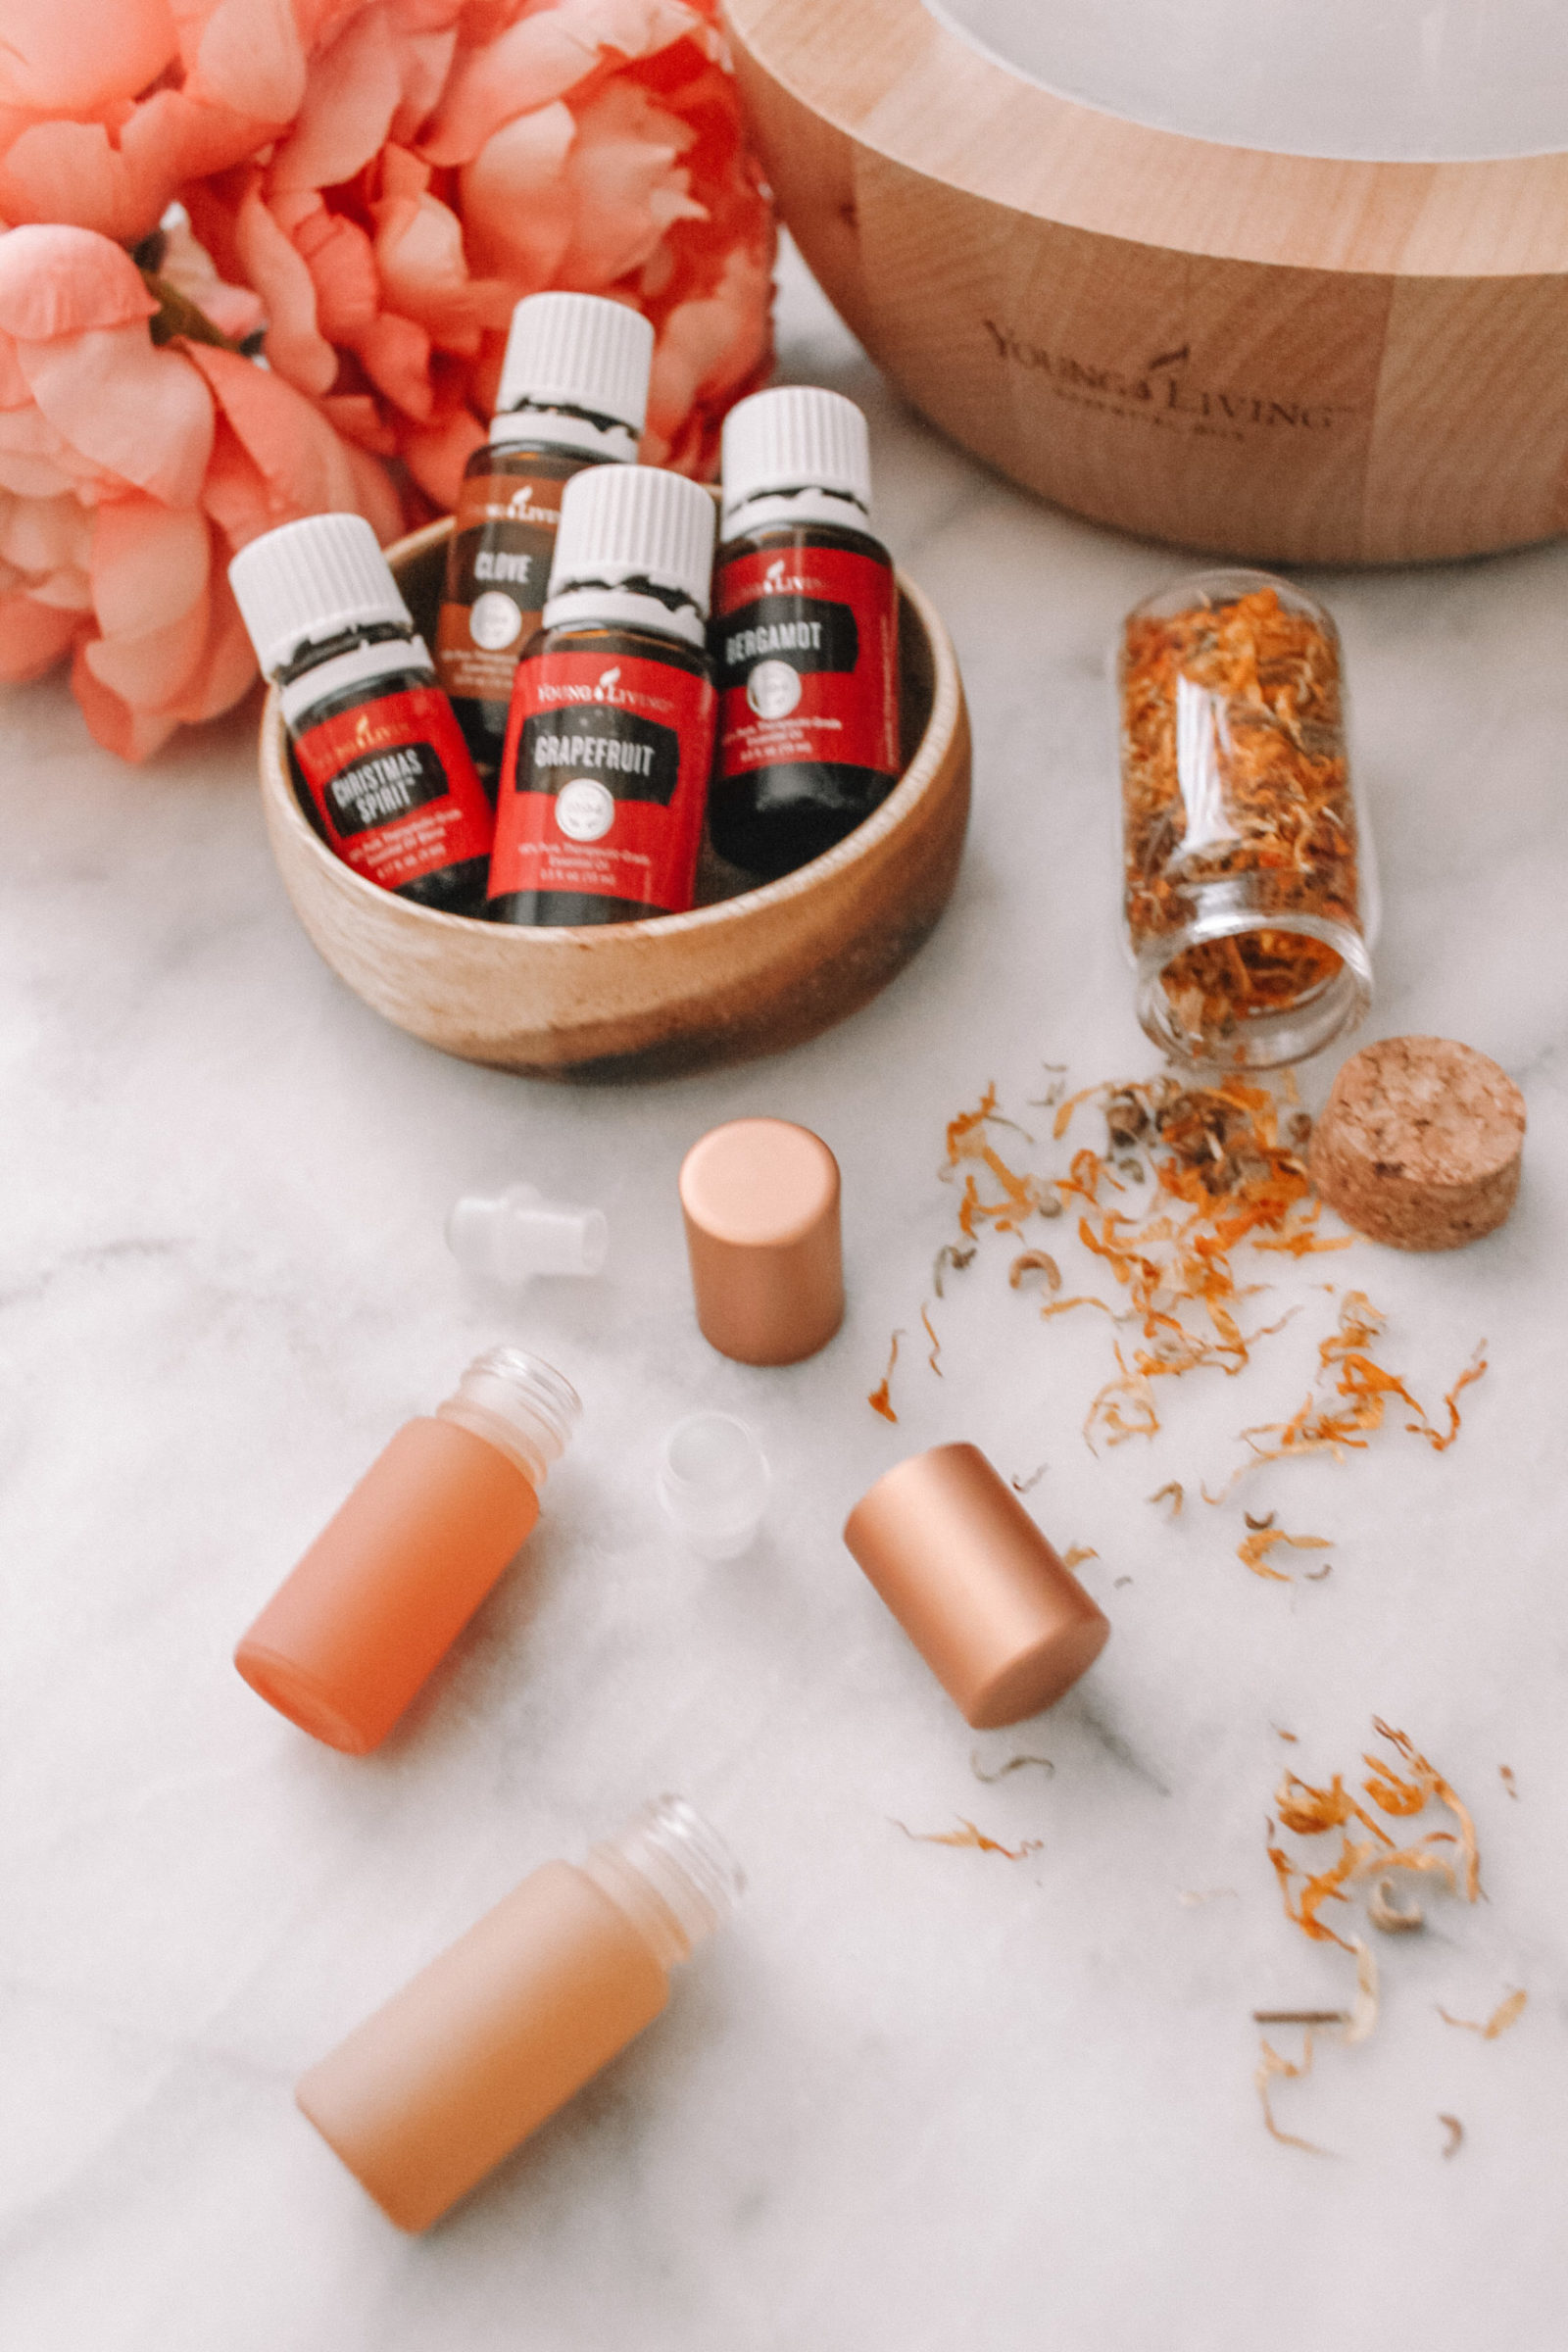 Aubrey Kinch shares her favorite fall diffuser recipes using Young Living essential oils and Whimsy + Wellness products